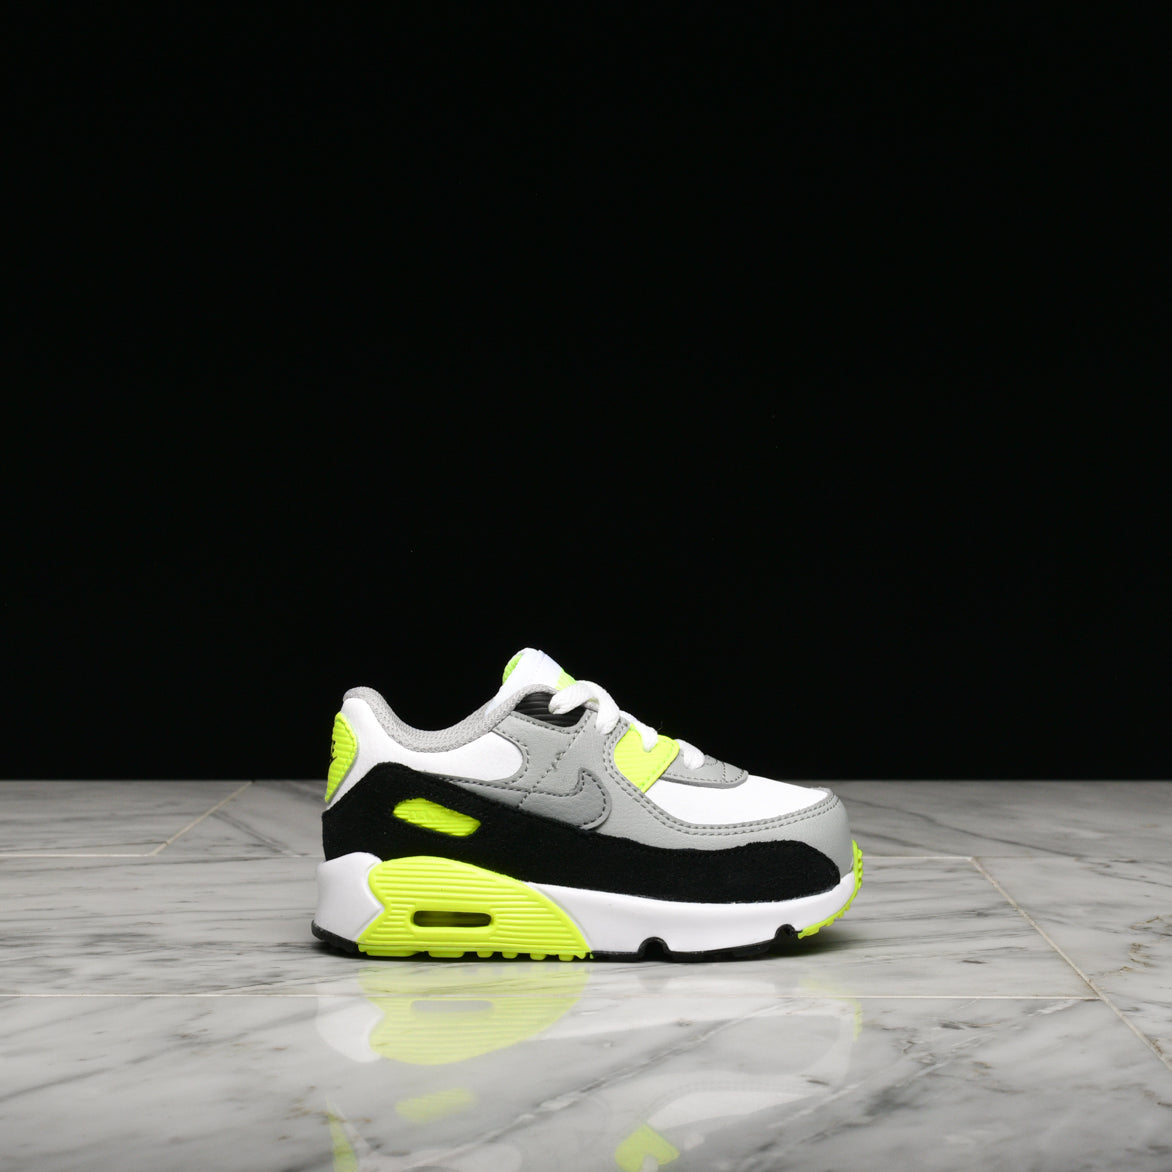 AIR MAX 90 LTR (TD) WHITE PARTICLE GREY VOLT